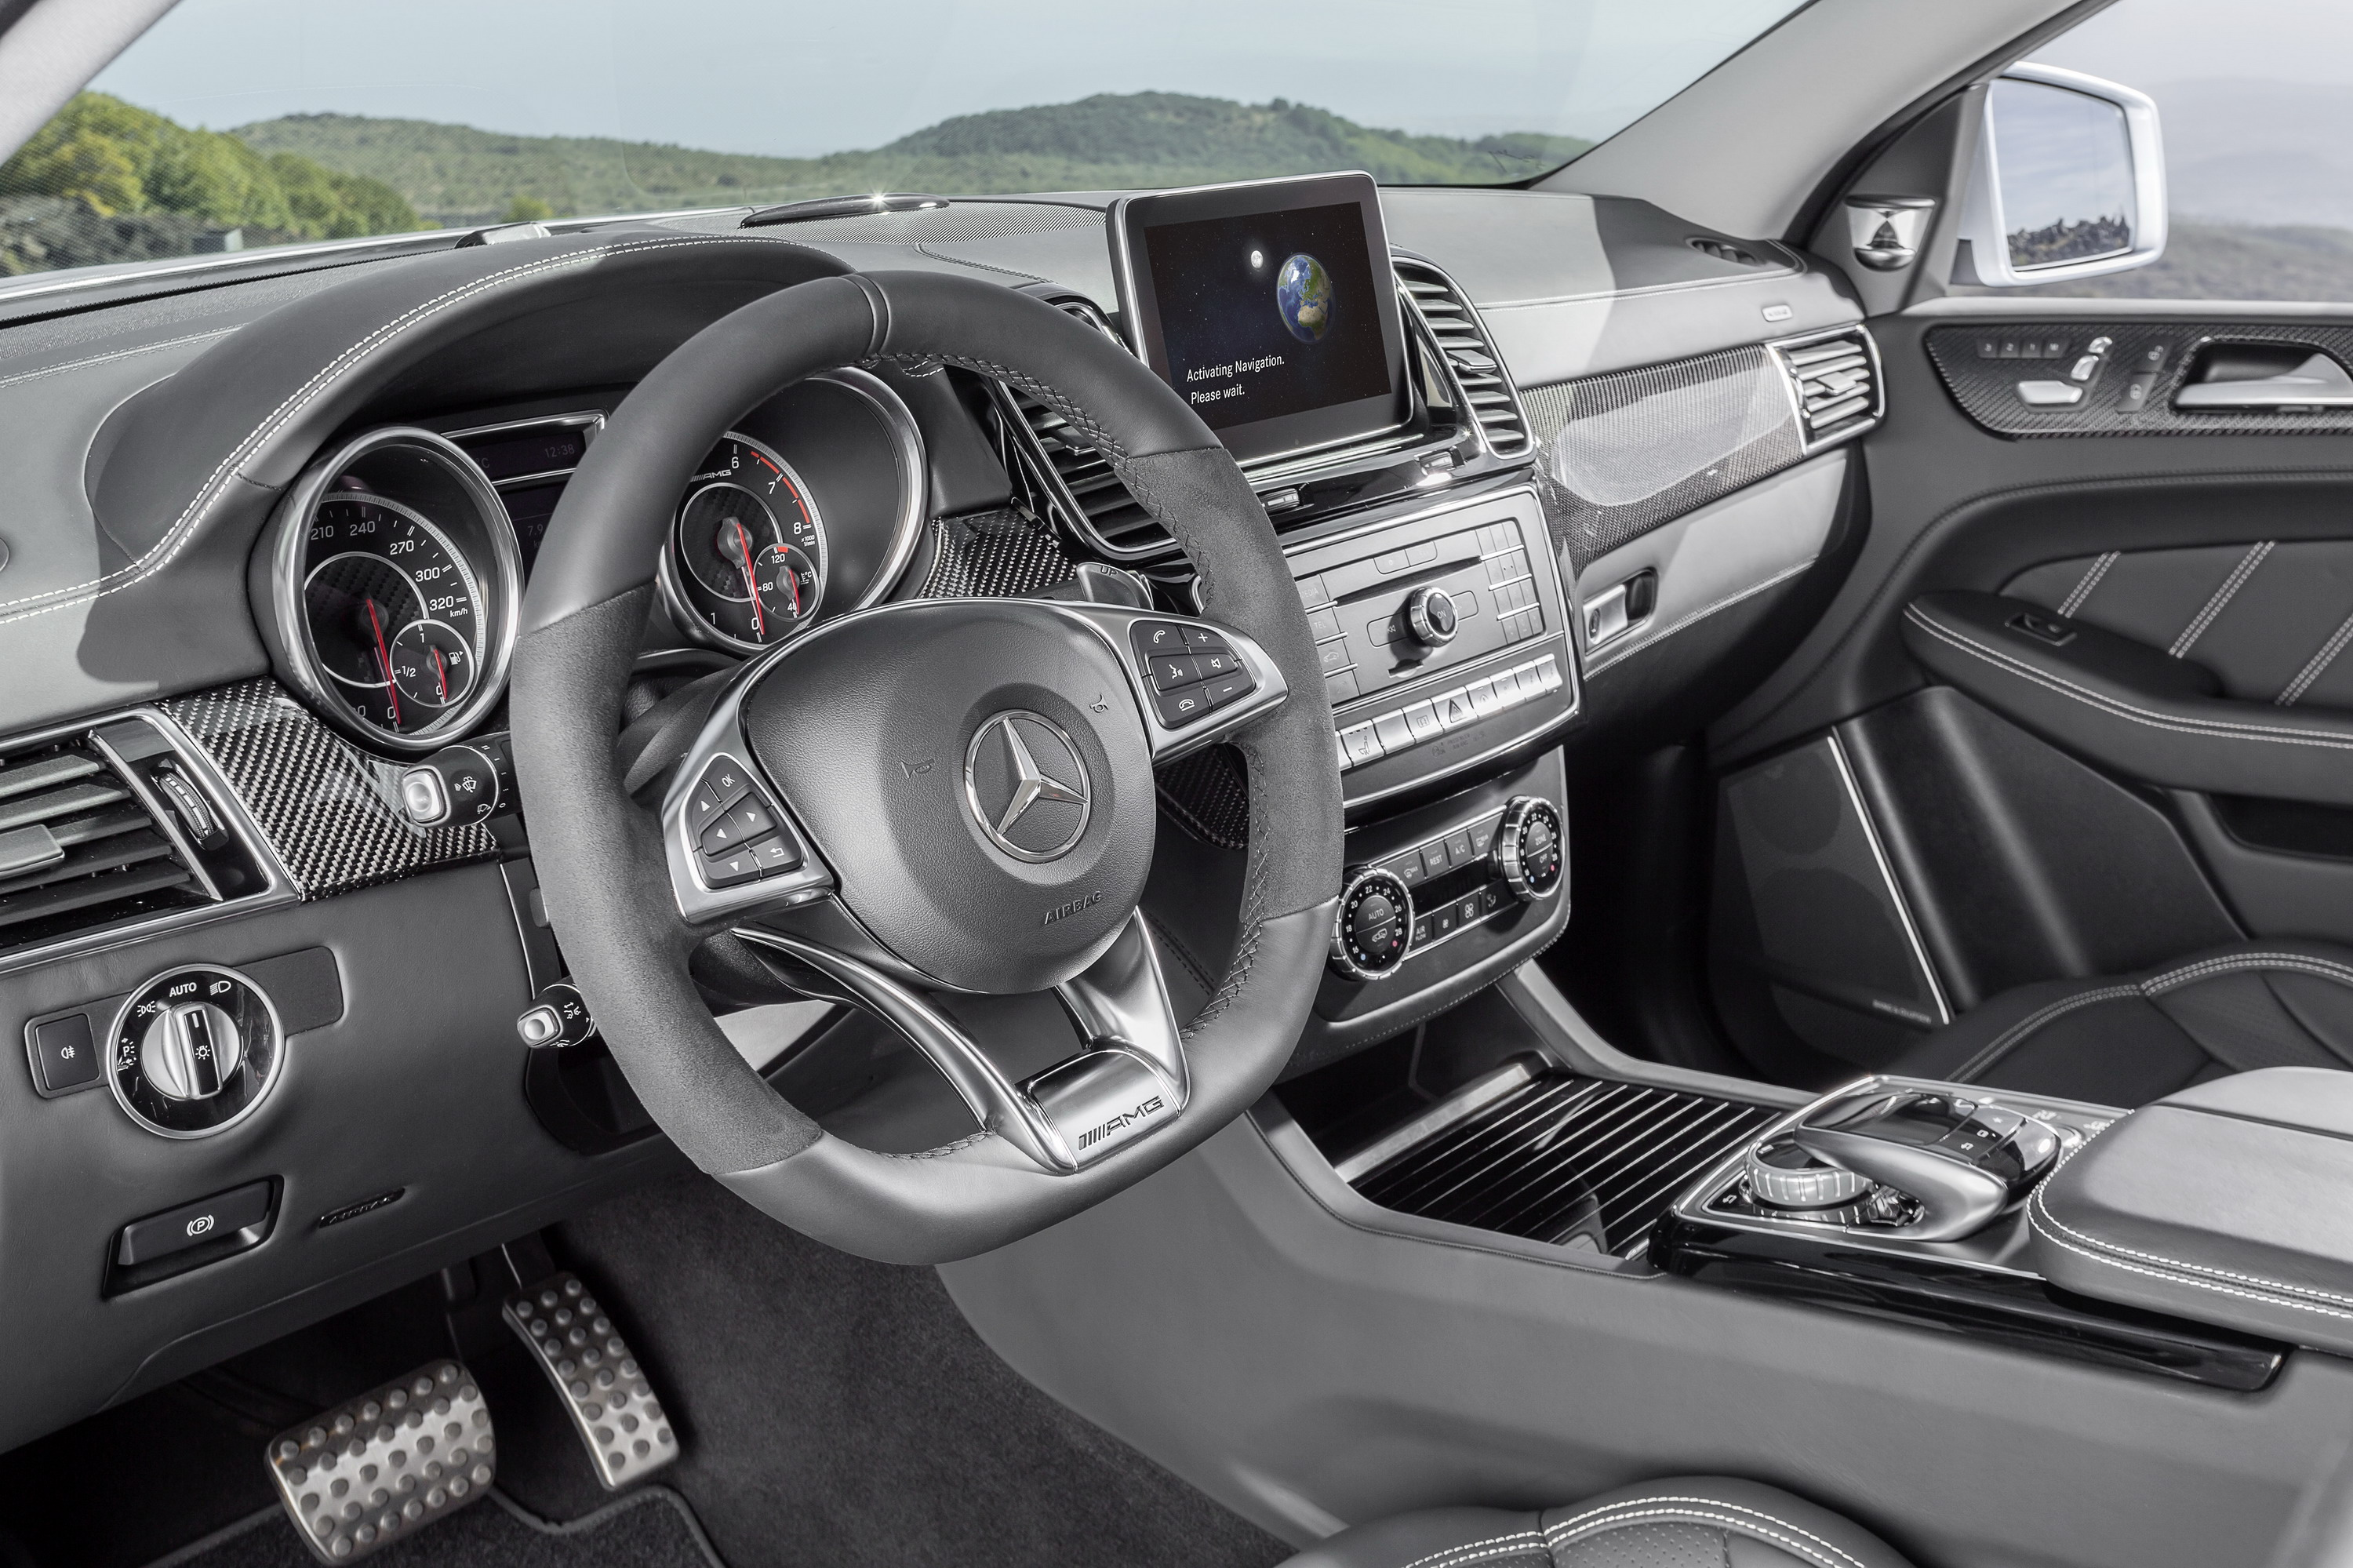 2016 Mercedes-Benz GLE63 AMG Coupe Review - Top Speed